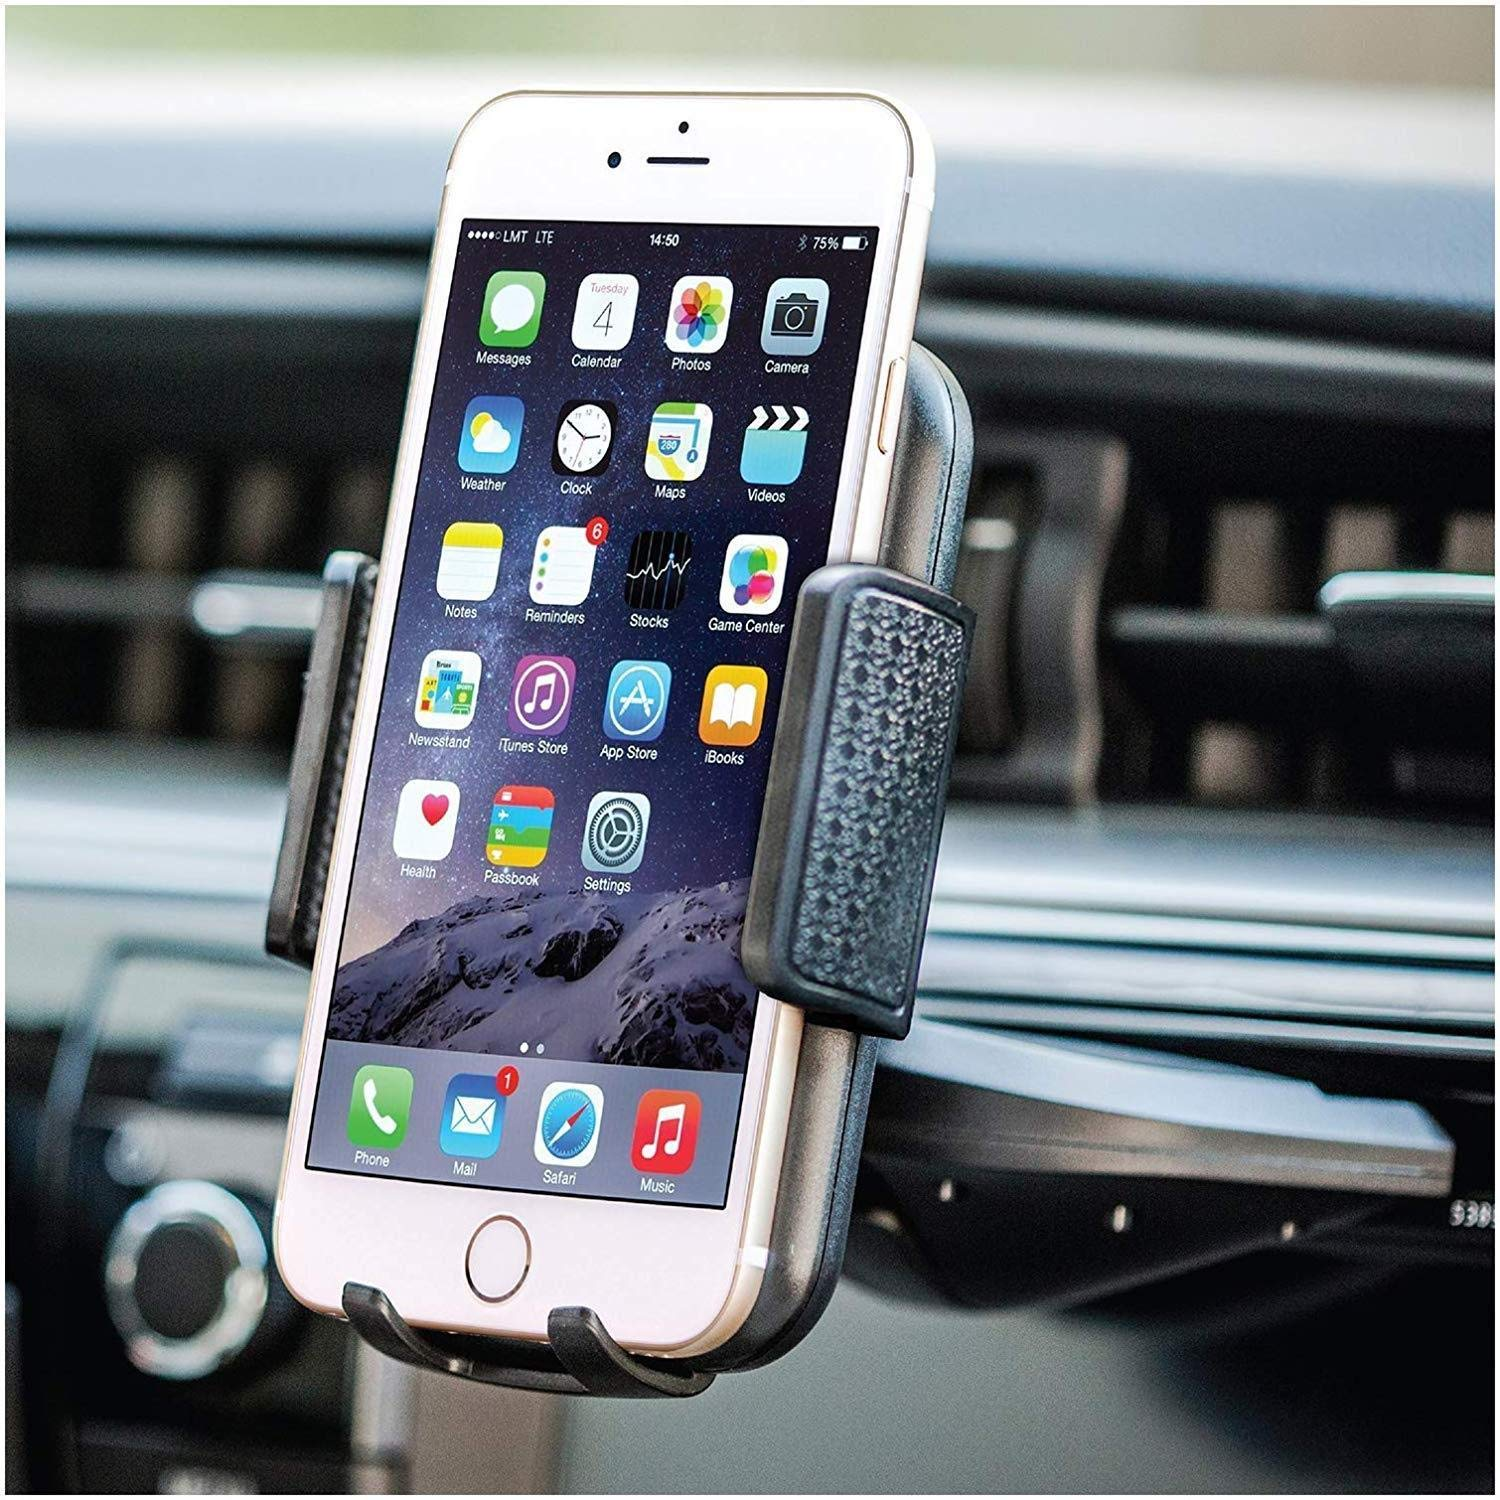 Bestrix Phone Holder for Car , CD Slot Car Phone Holder, Hands Free Car Mount with Strong Grip Universal Compatibility with iPhone Xs MAX/XR/XS/X/8/8Plus, Galaxy S10/S10+/S10e/S9/S9+/N9/S8, Google by Bestrix